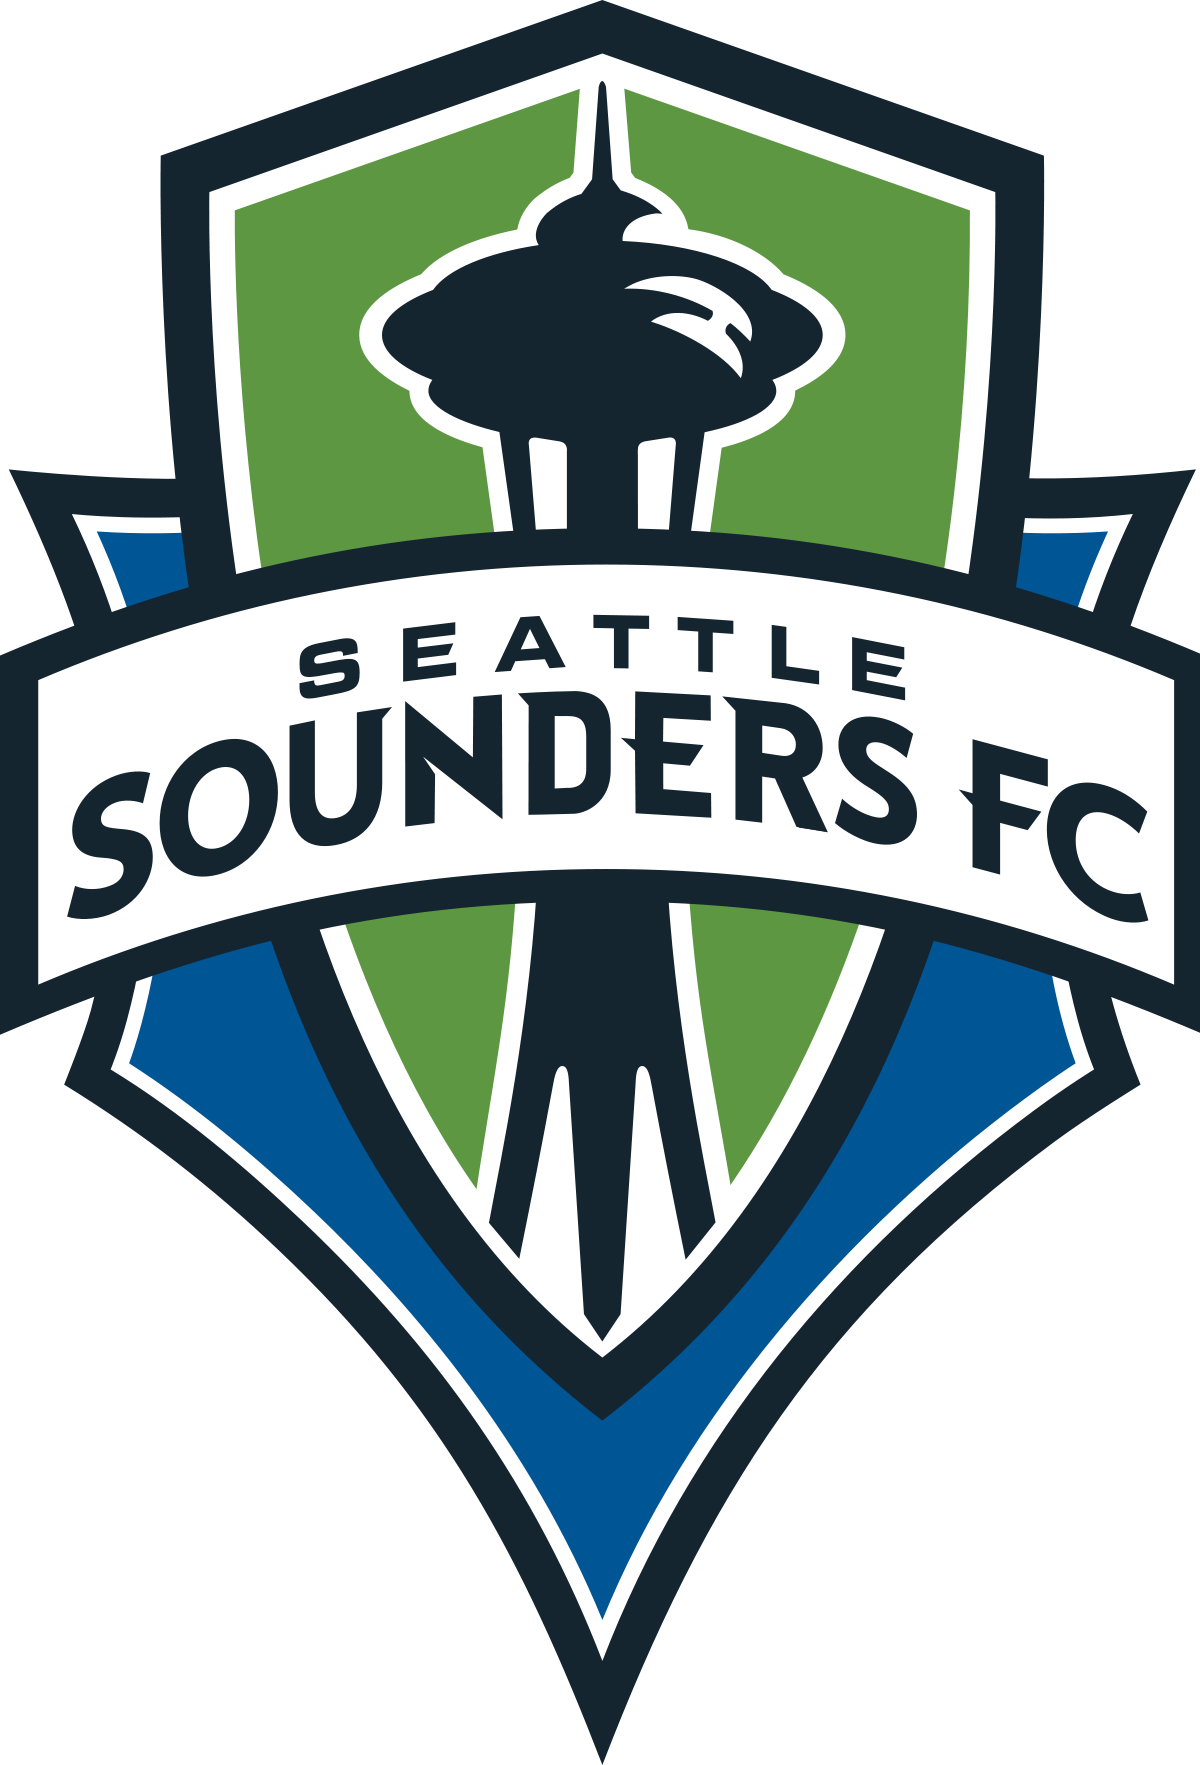 Seattle football field clipart svg black and white download Seattle Sounders FC - Wikipedia svg black and white download